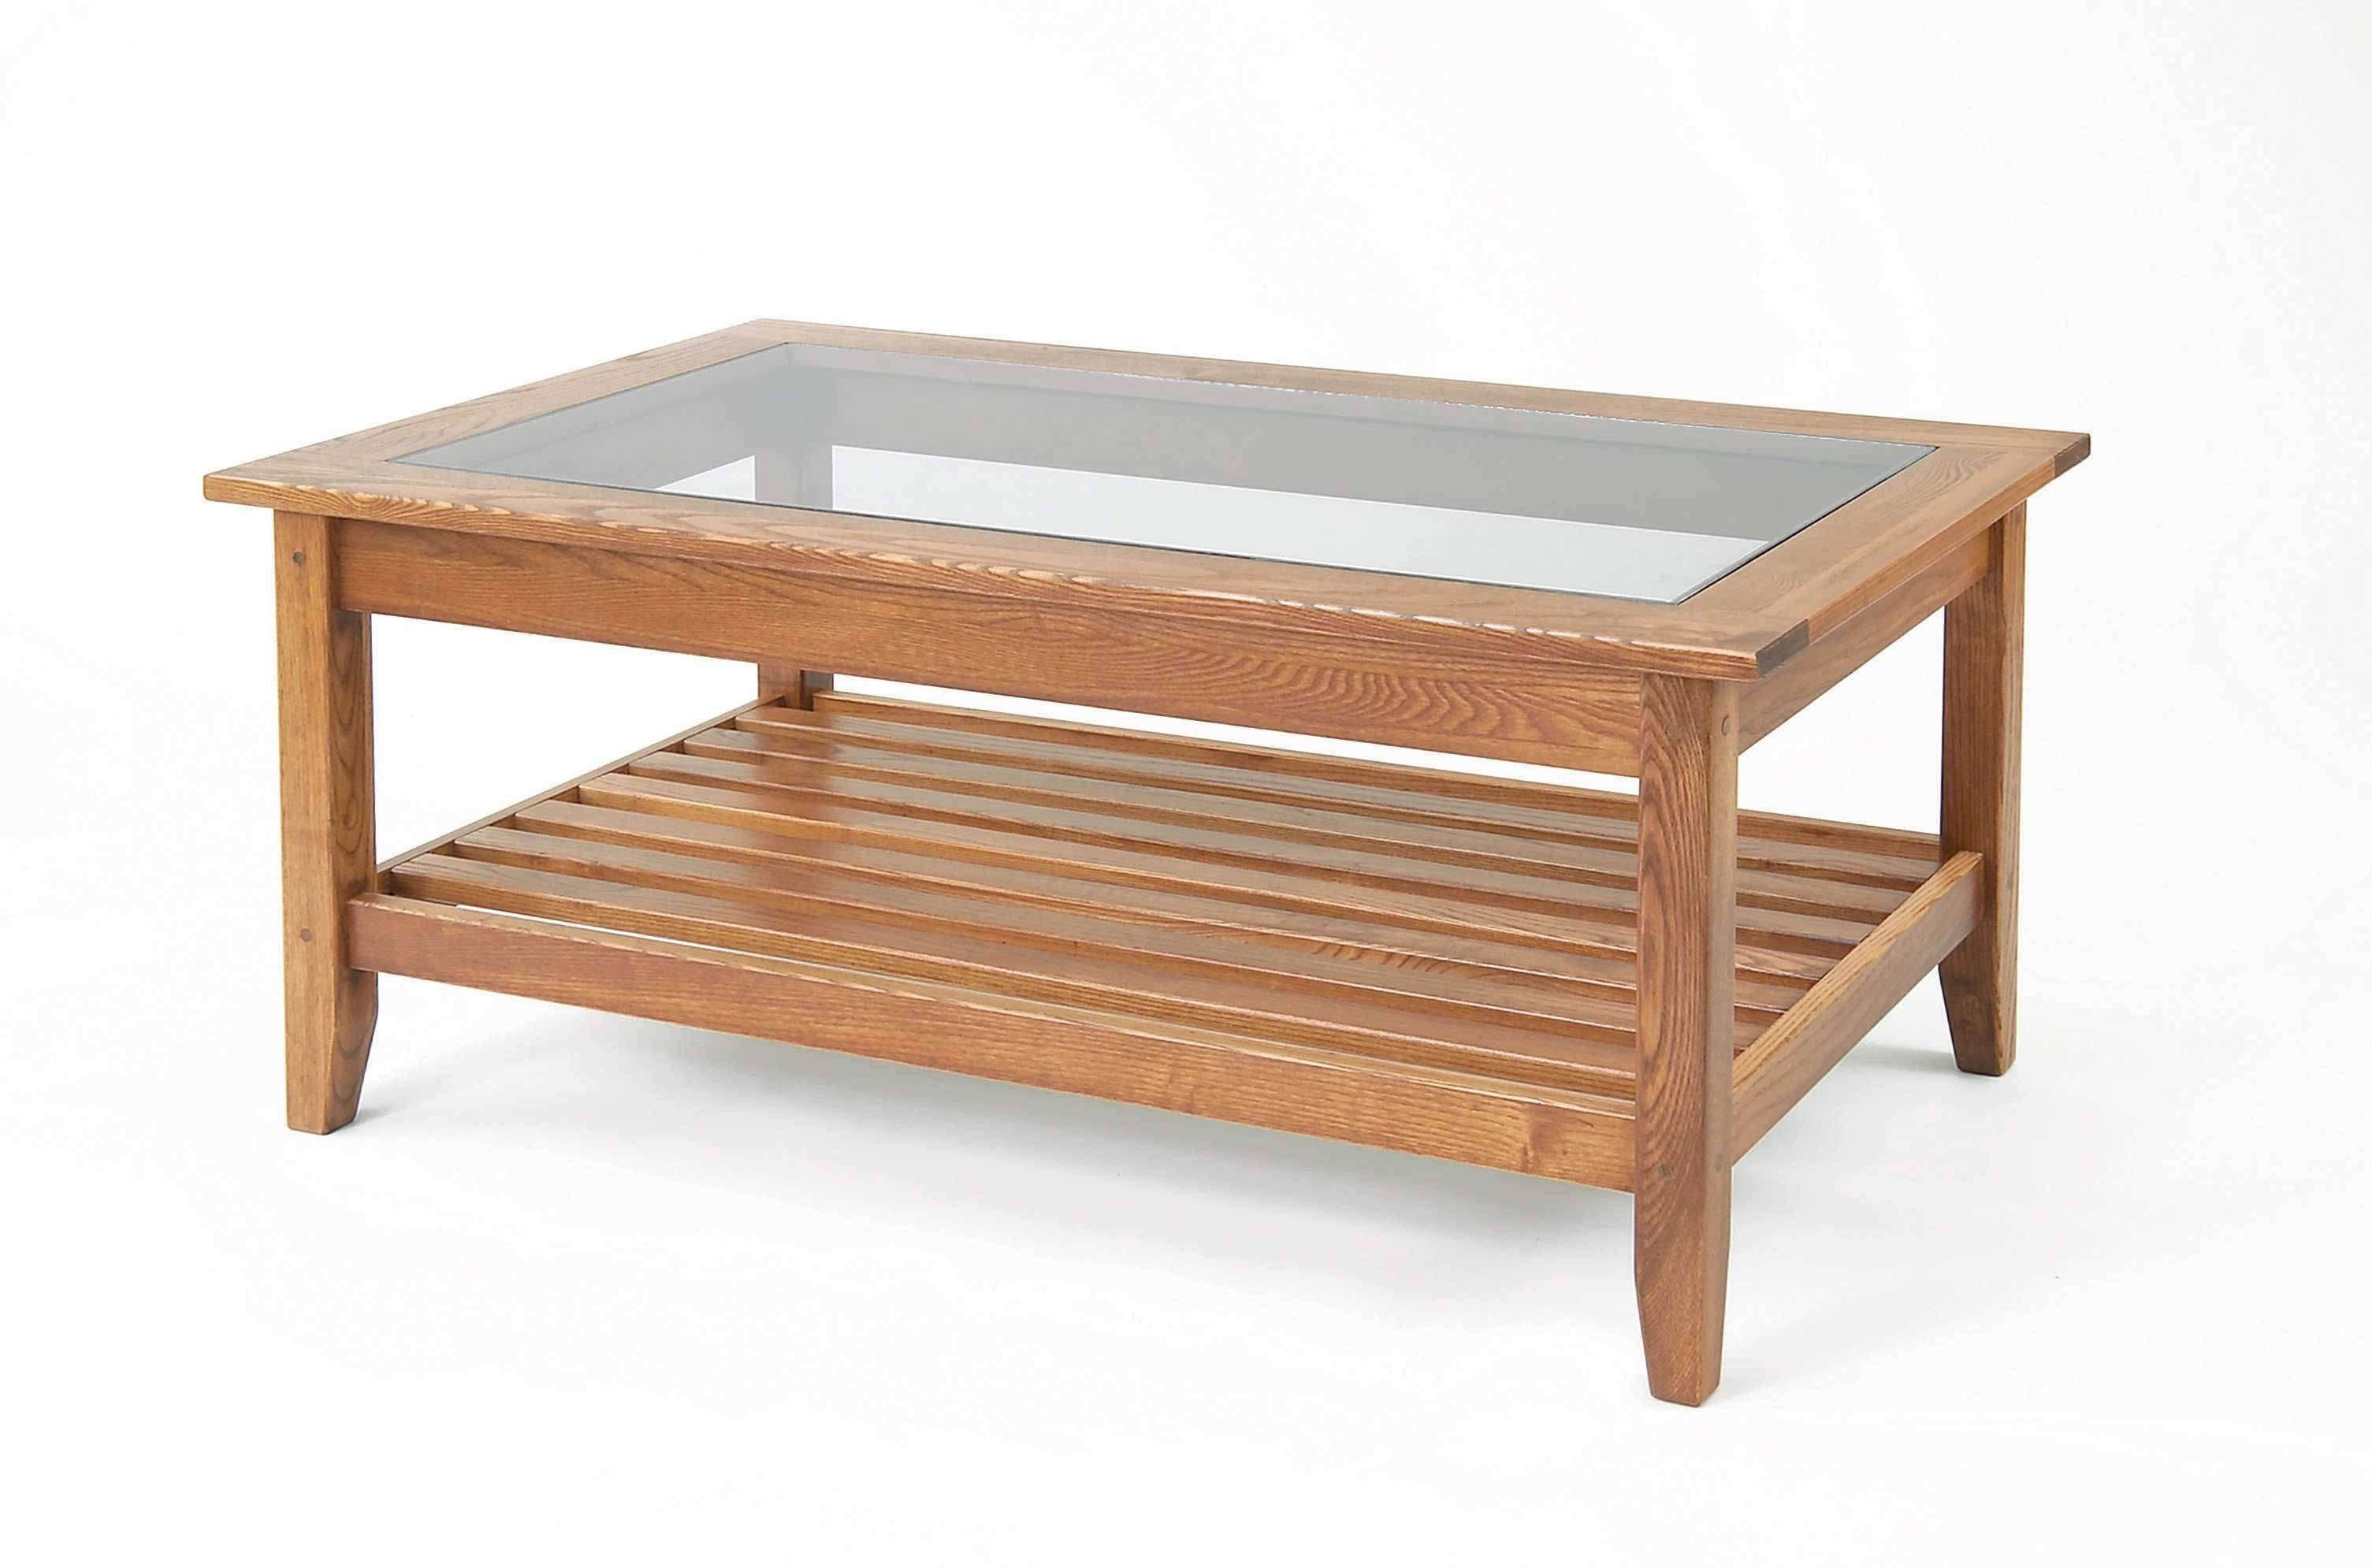 Creative Glass Top Coffee Tables With Wood Base – Irpmi throughout Glass Topped Coffee Tables (Image 2 of 15)